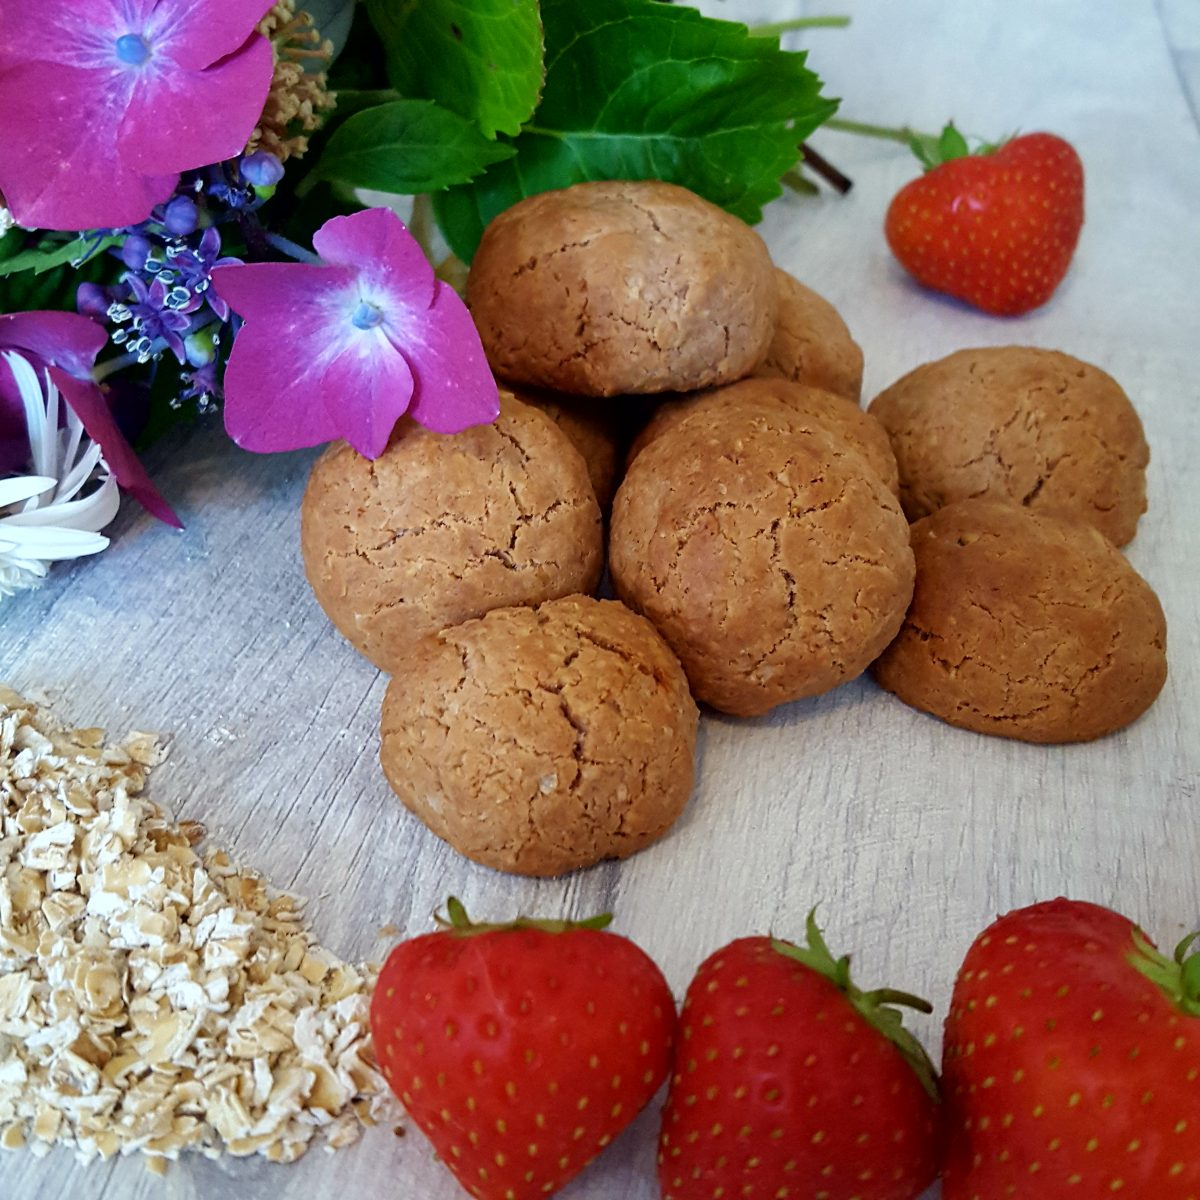 Nutty strawberry bites